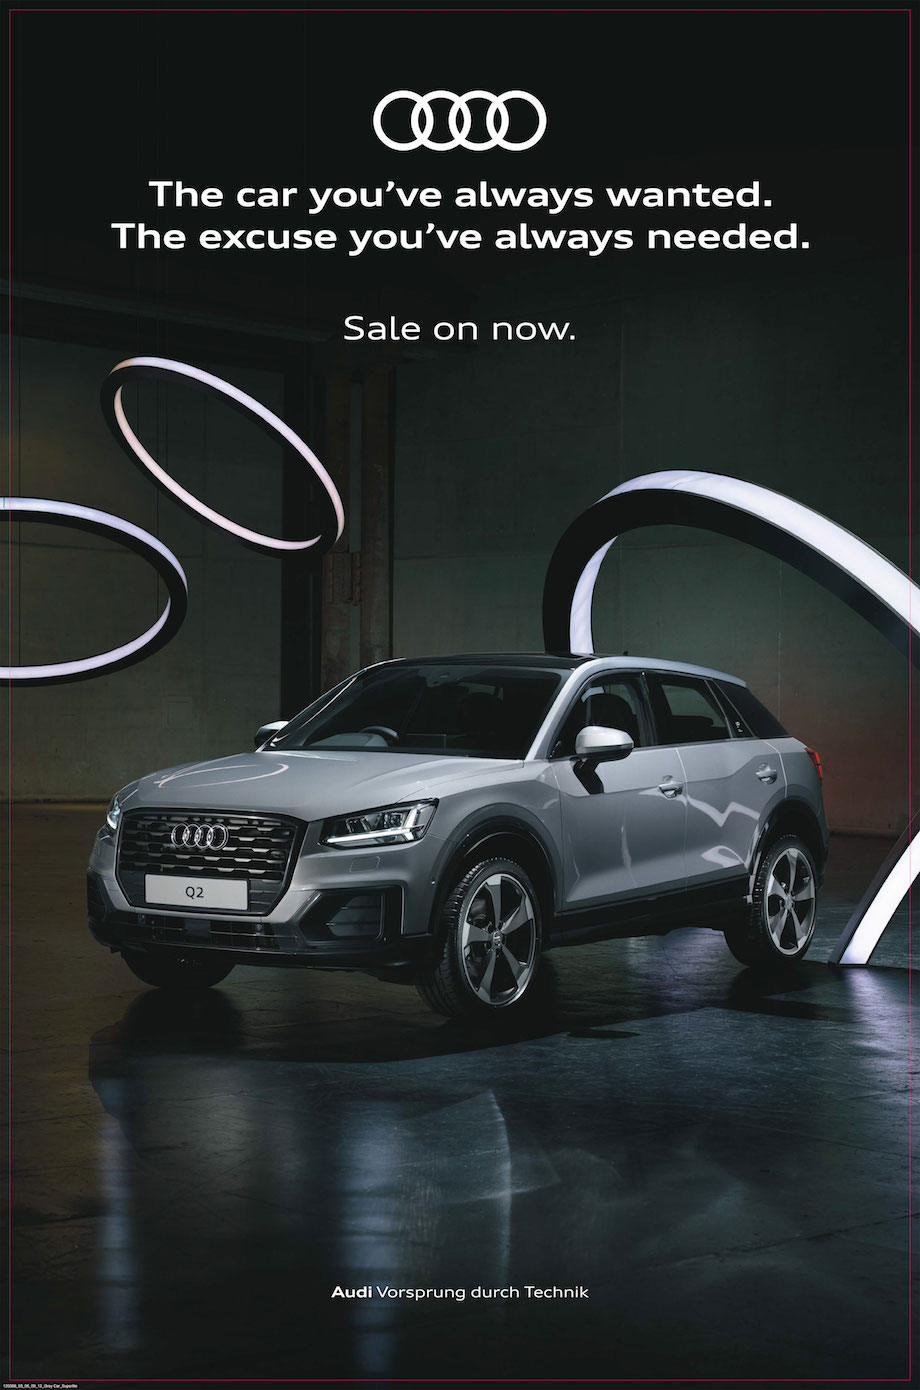 Audi launches new 'The car you've always wanted' retail campaign via BMF Australia